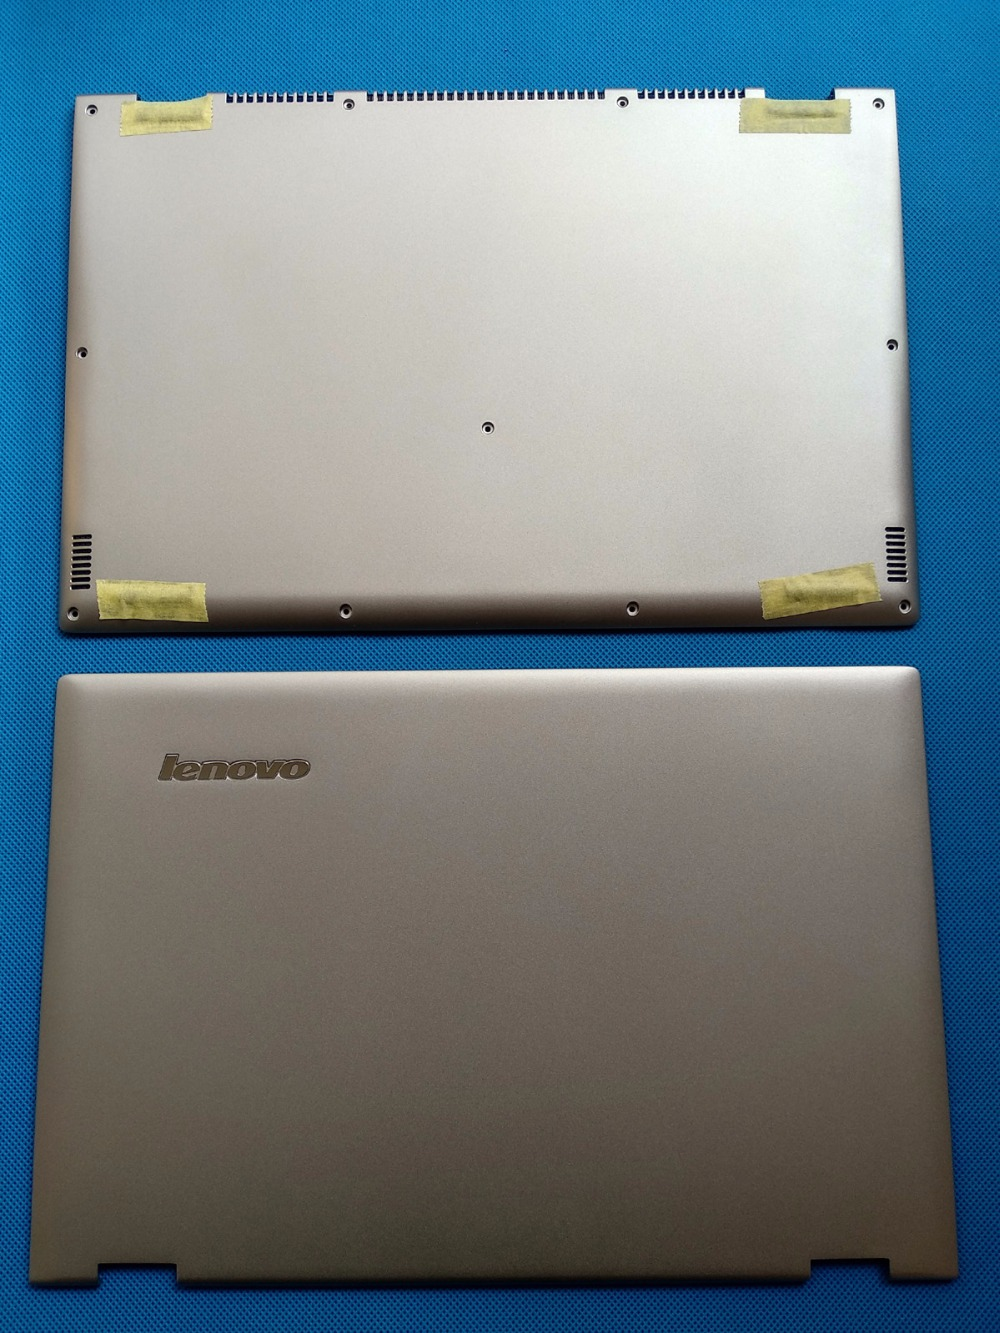 New Original Lenovo Ideapad Yoga 2 Pro 13 LCD Back Rear Lid Cover+ Base Cover Bottom Lower Case AM0S9000310 AM0S9000210 silvery case cover for lenovo ideapad yoga 2 pro 13 13 base bottom cover laptop replace cover am0s9000200